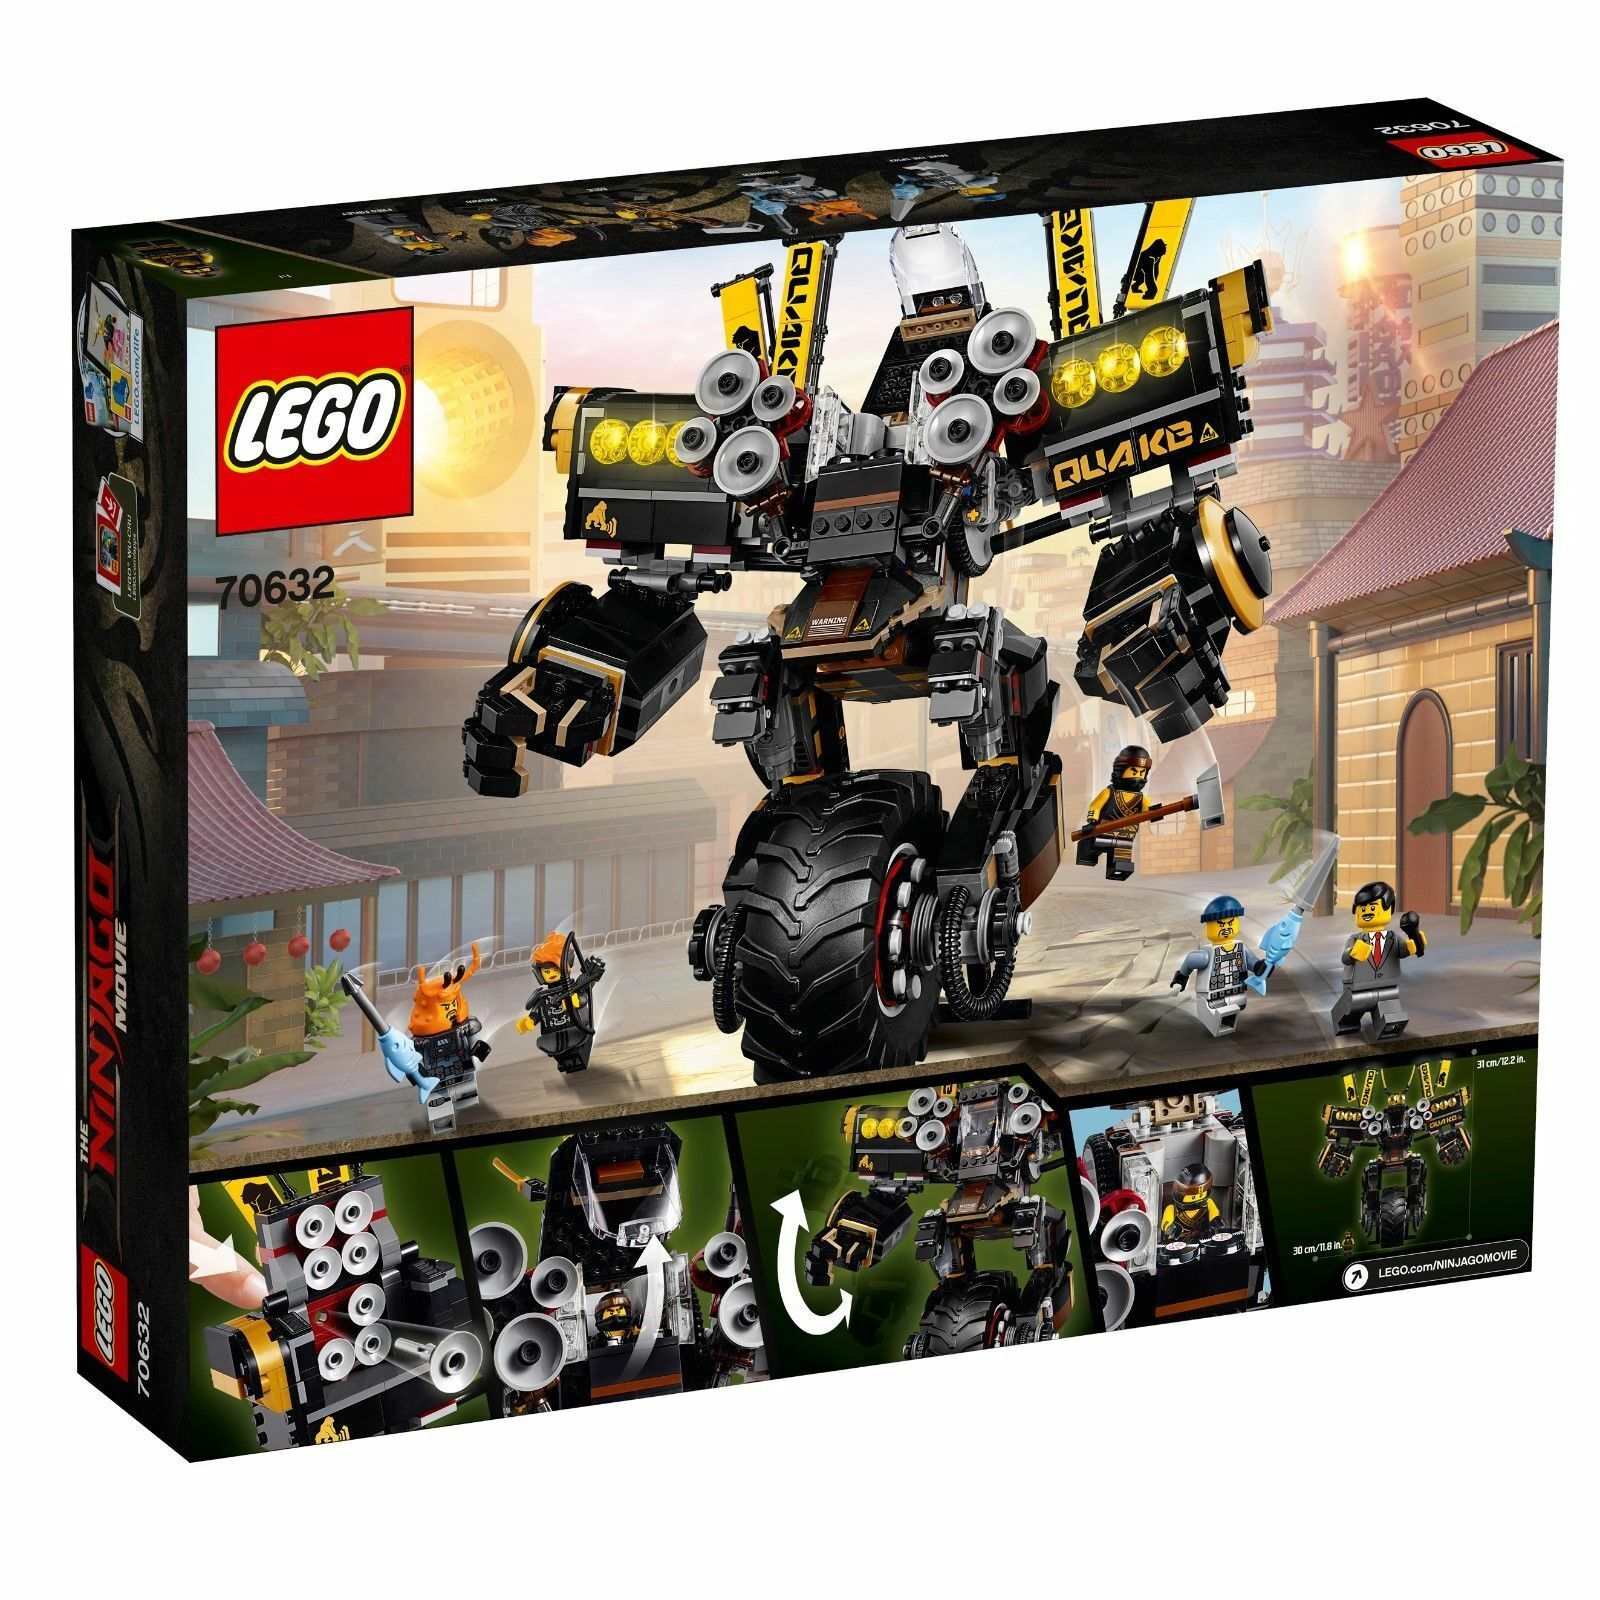 The LEGO ® Ninjago Ninjago Ninjago ® Movie ™ 70632